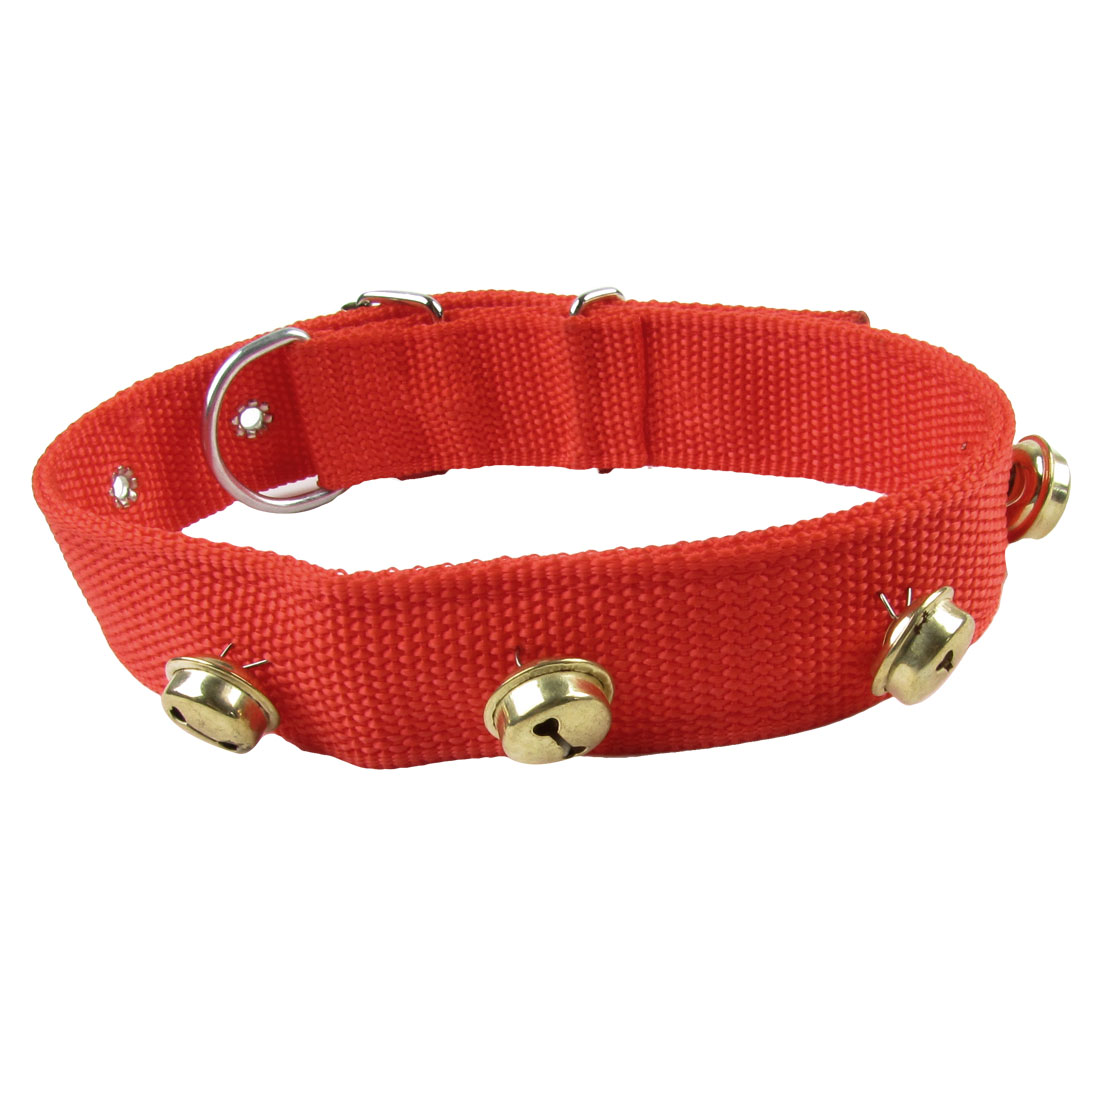 3cm Wide Metal Jingle Bell Detail Adjustable Pet Dog Puppy Collar Red Belt